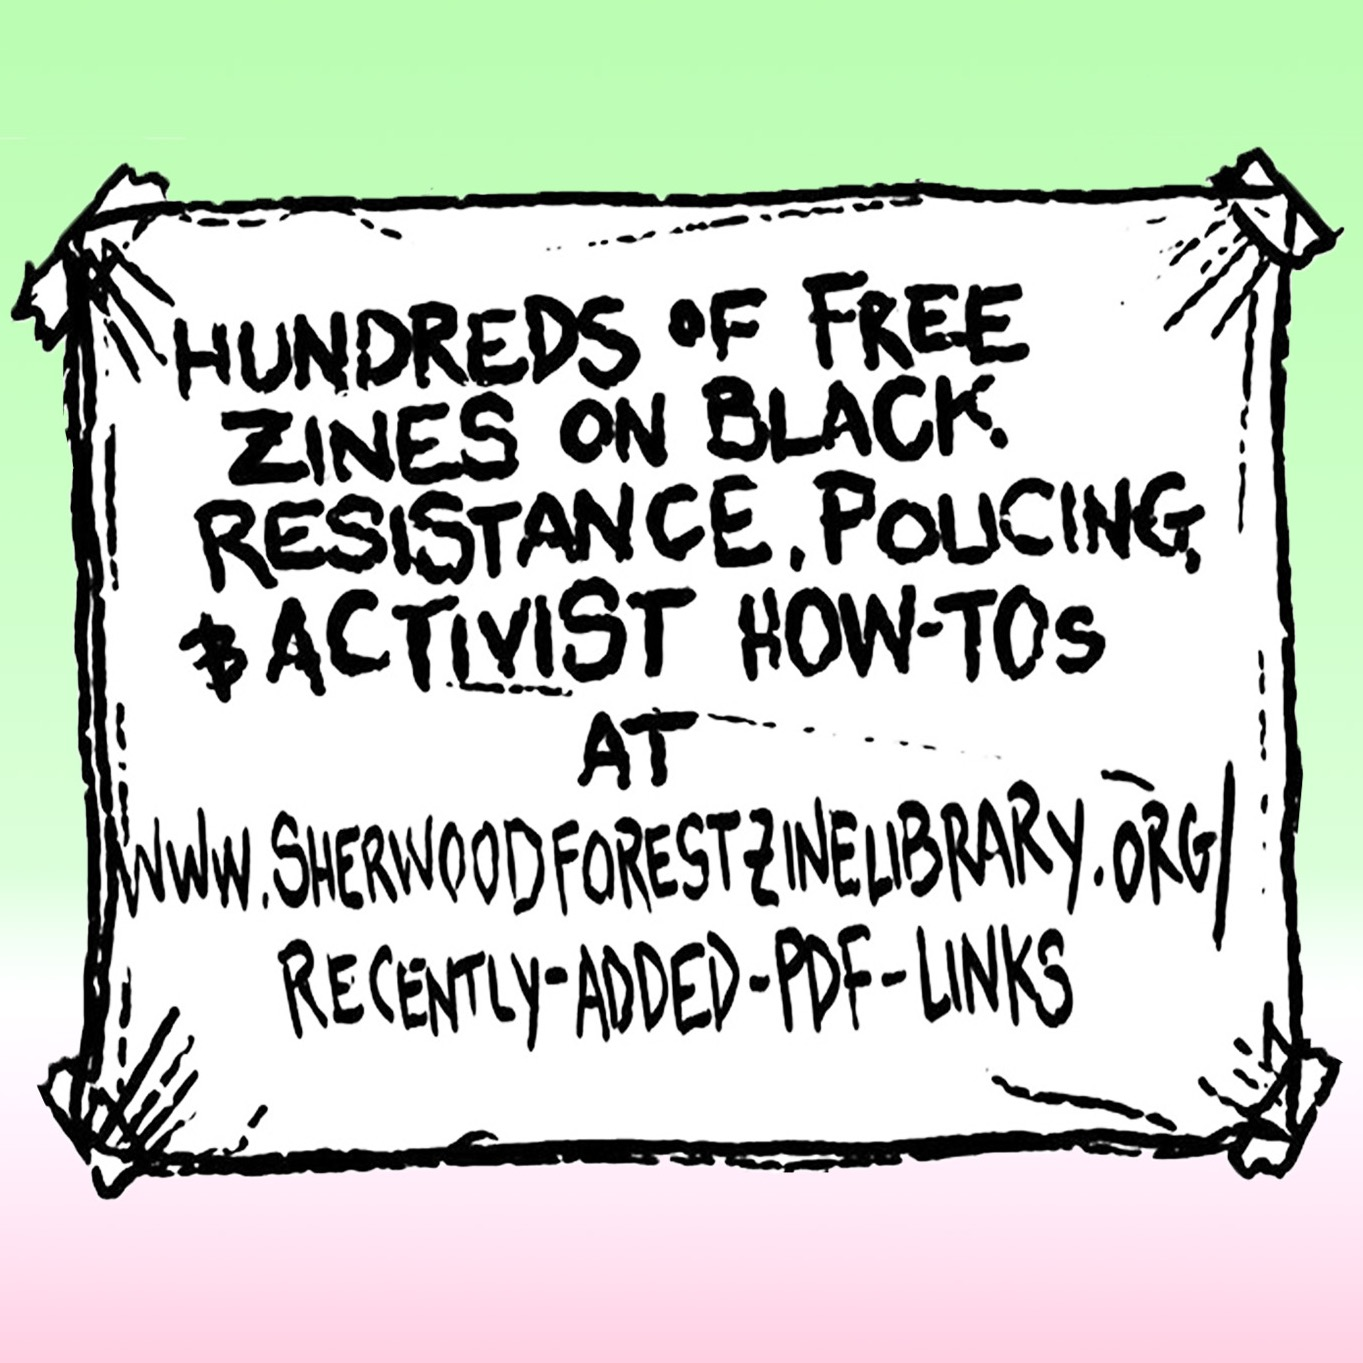 Free Zines on Black Resistance